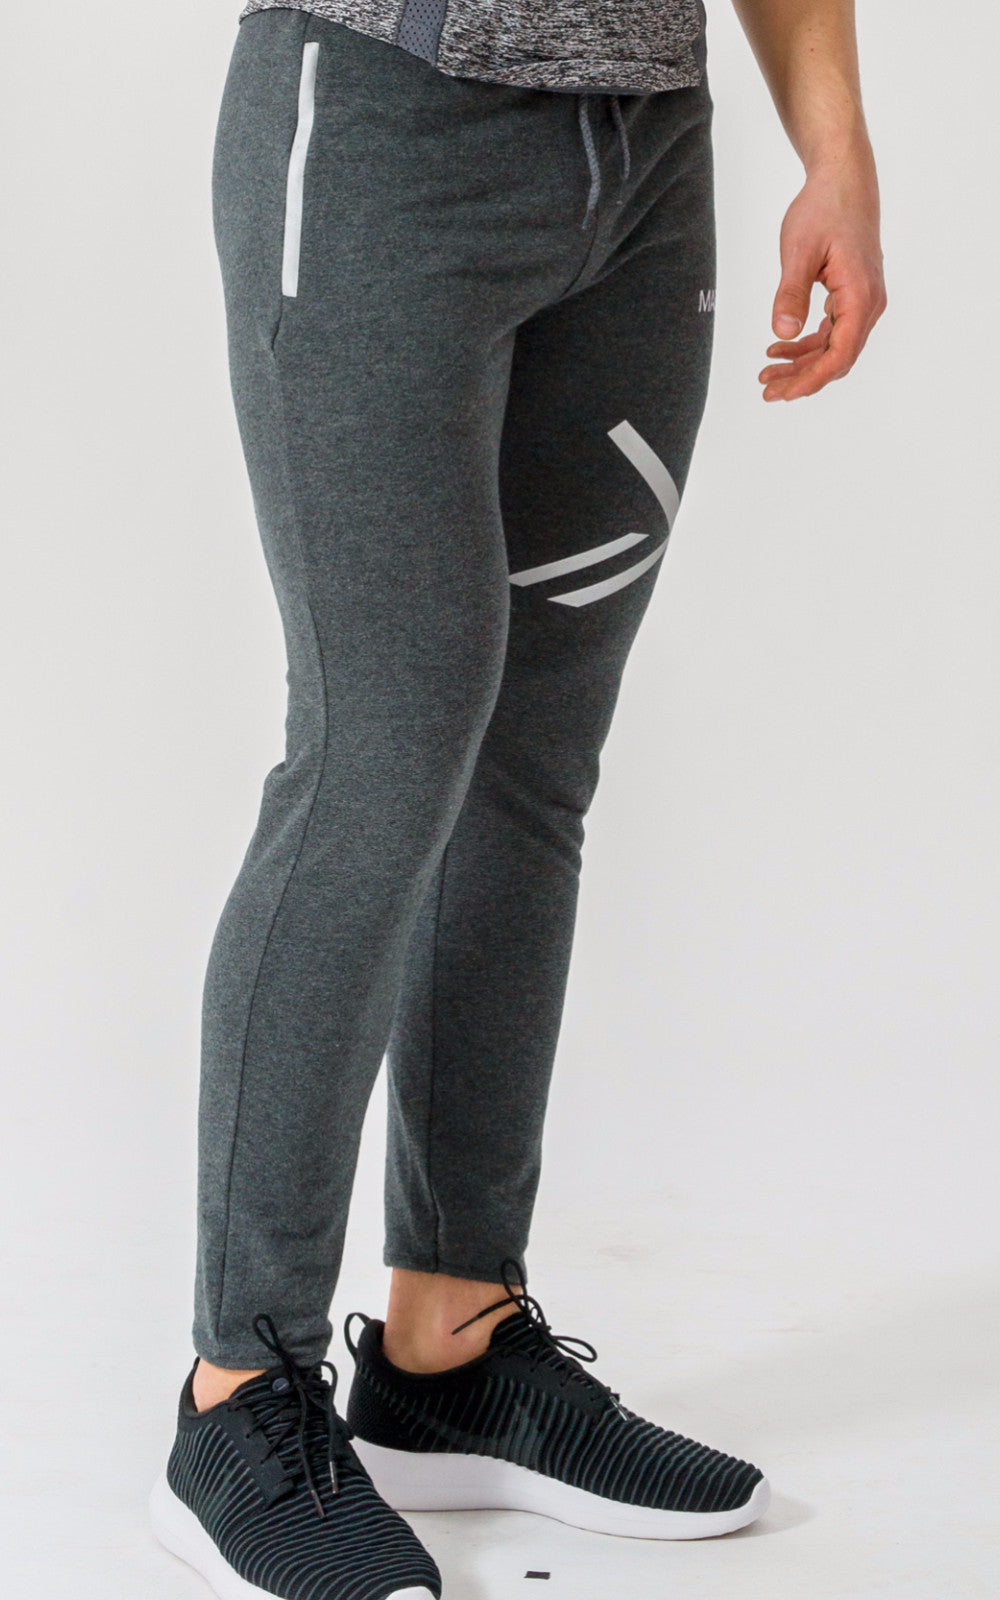 Maze Reflect Tapered Bottoms - Dark Grey - Maze